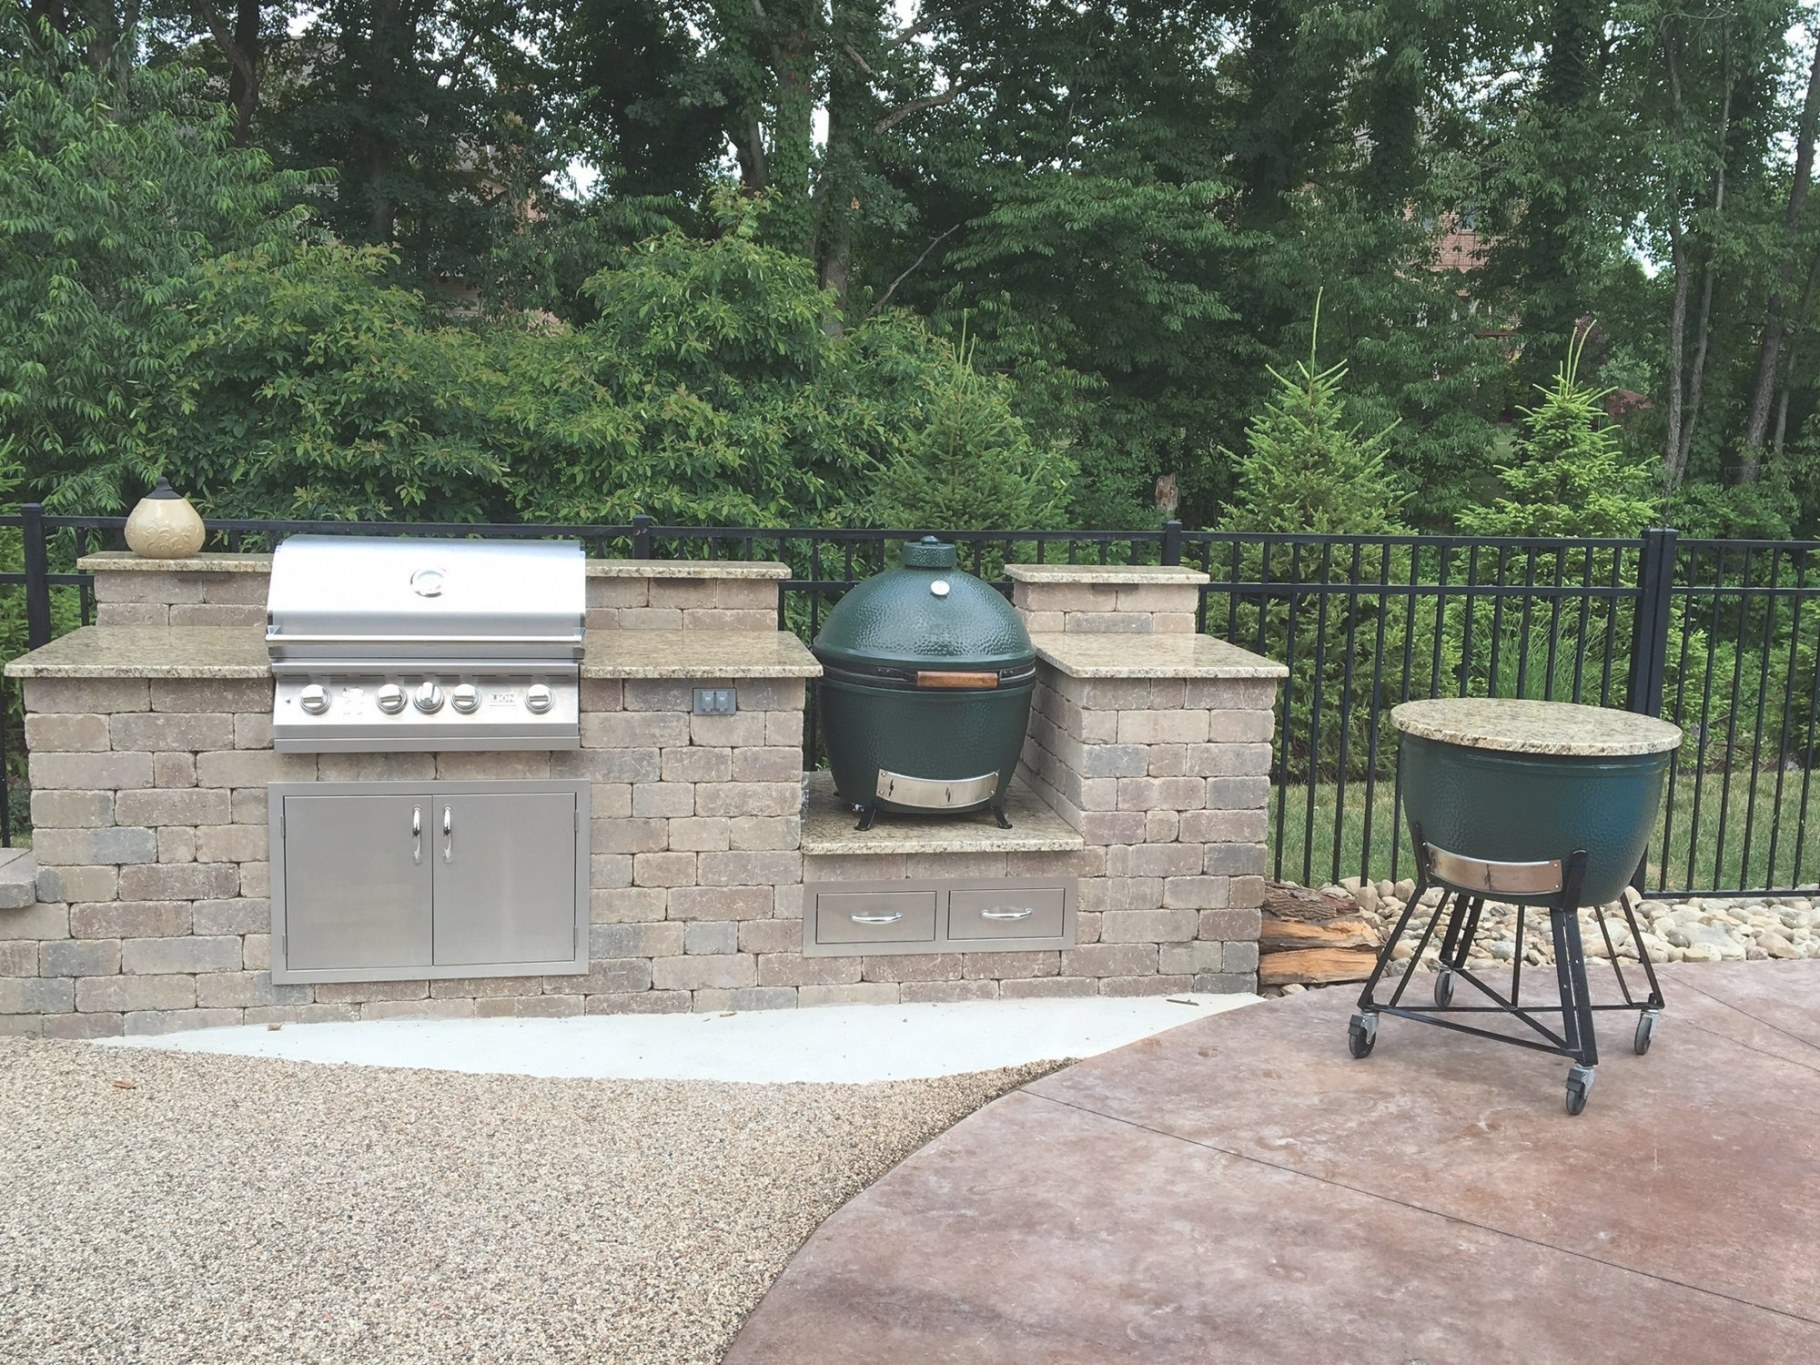 Outdoor Kitchen Island — Big Green Egg - Egghead Forum - The with regard to Big Green Egg Outdoor Kitchen